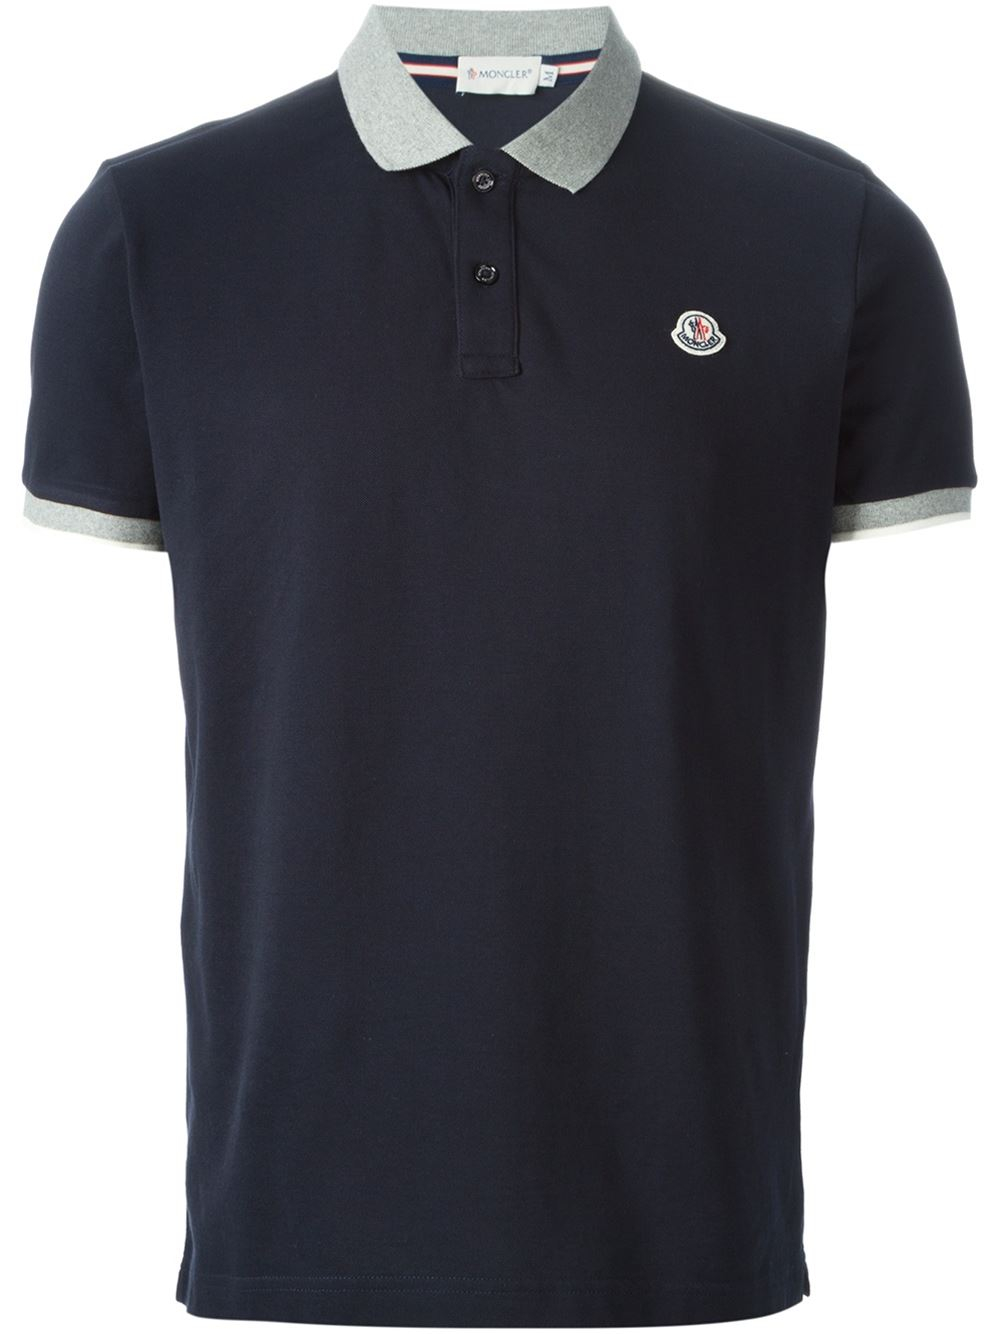 lyst moncler contrast collar polo shirt in blue for men. Black Bedroom Furniture Sets. Home Design Ideas